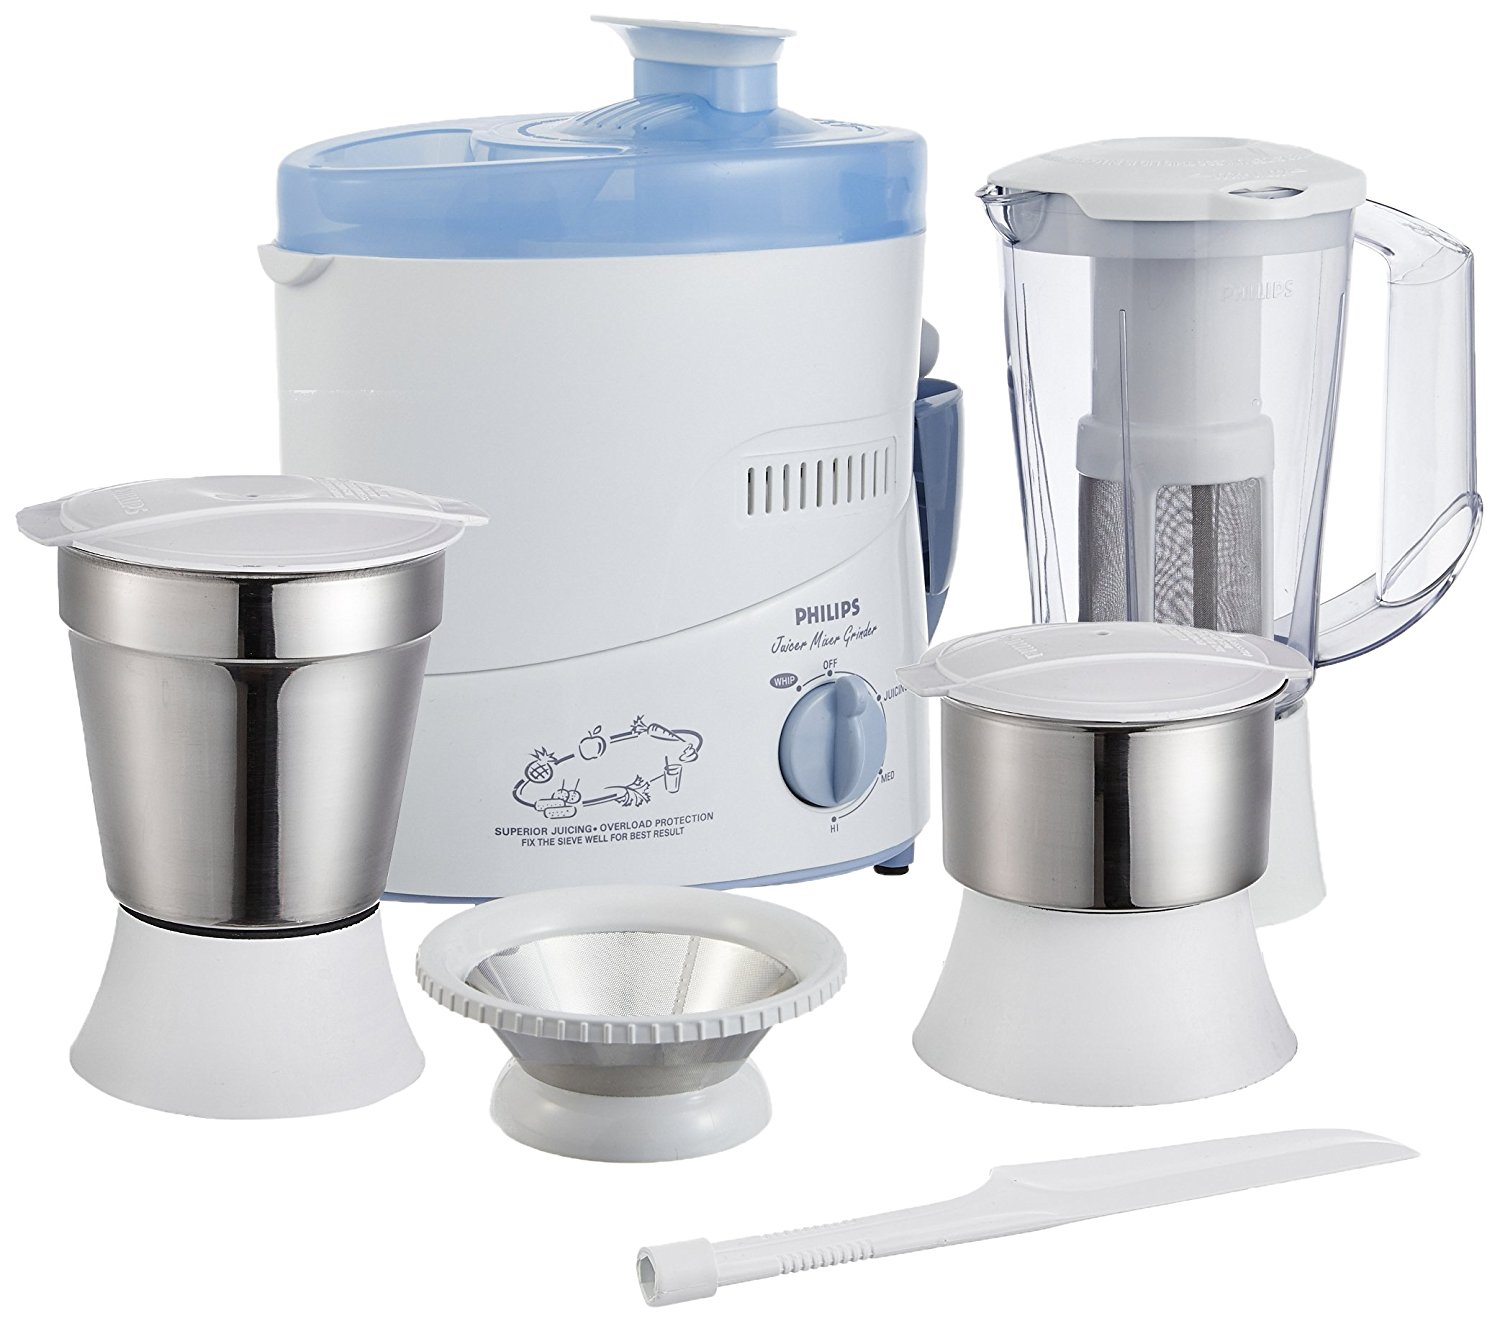 Philips HL1632 Juicer Mixer Grinder Review 2018 | Read Before Buying